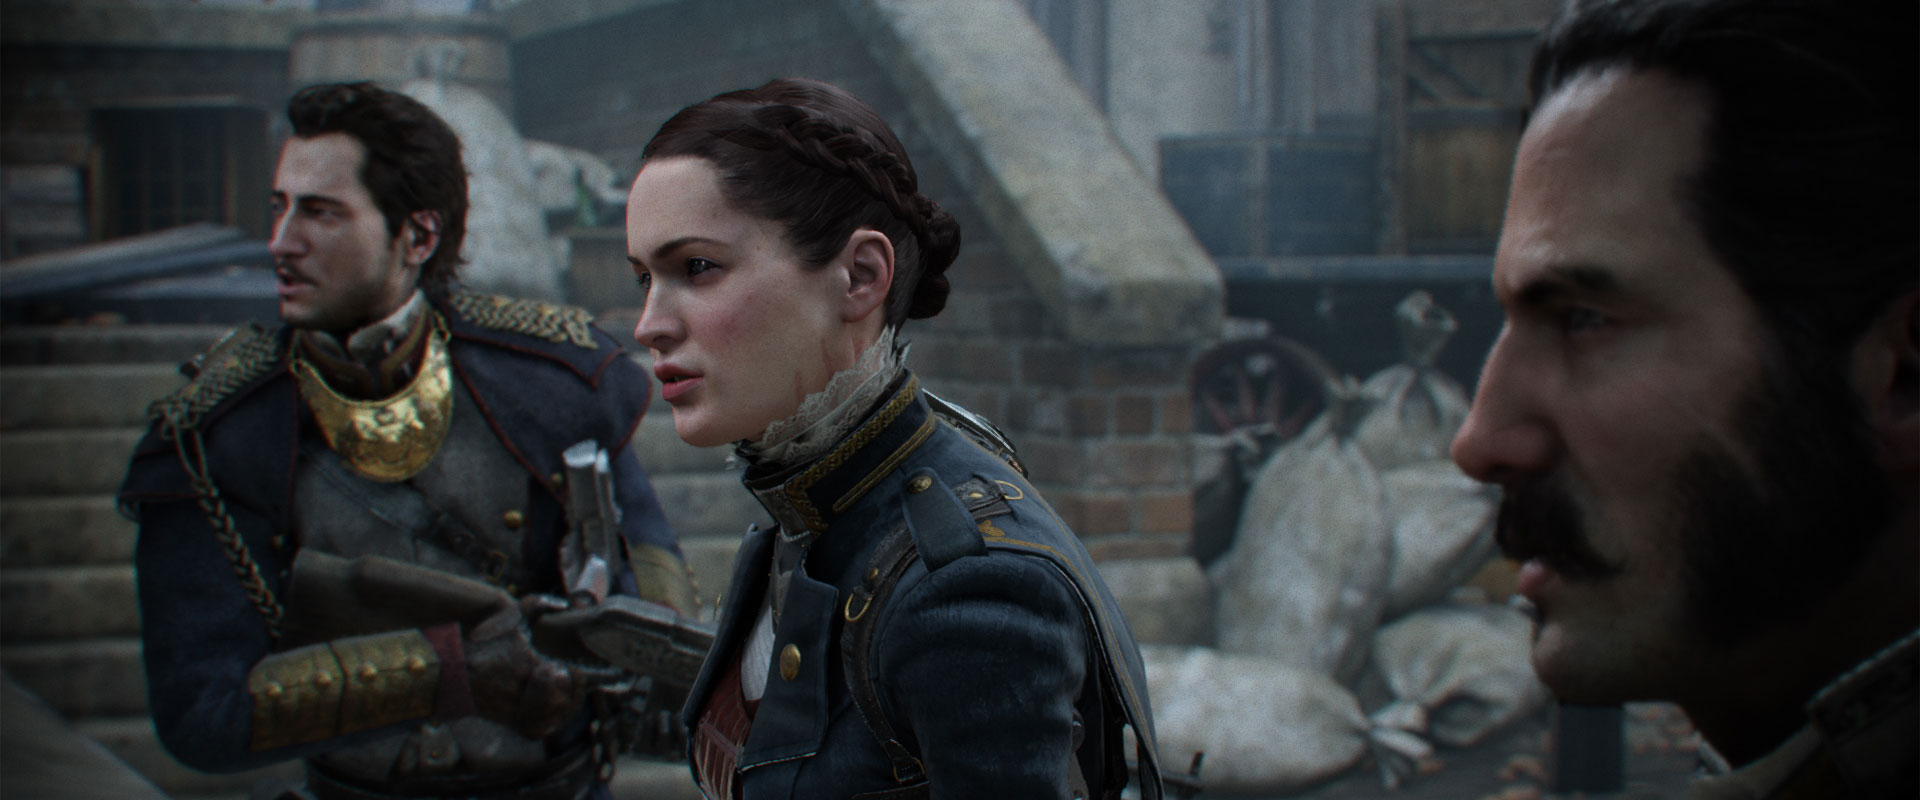 The Order. 1886